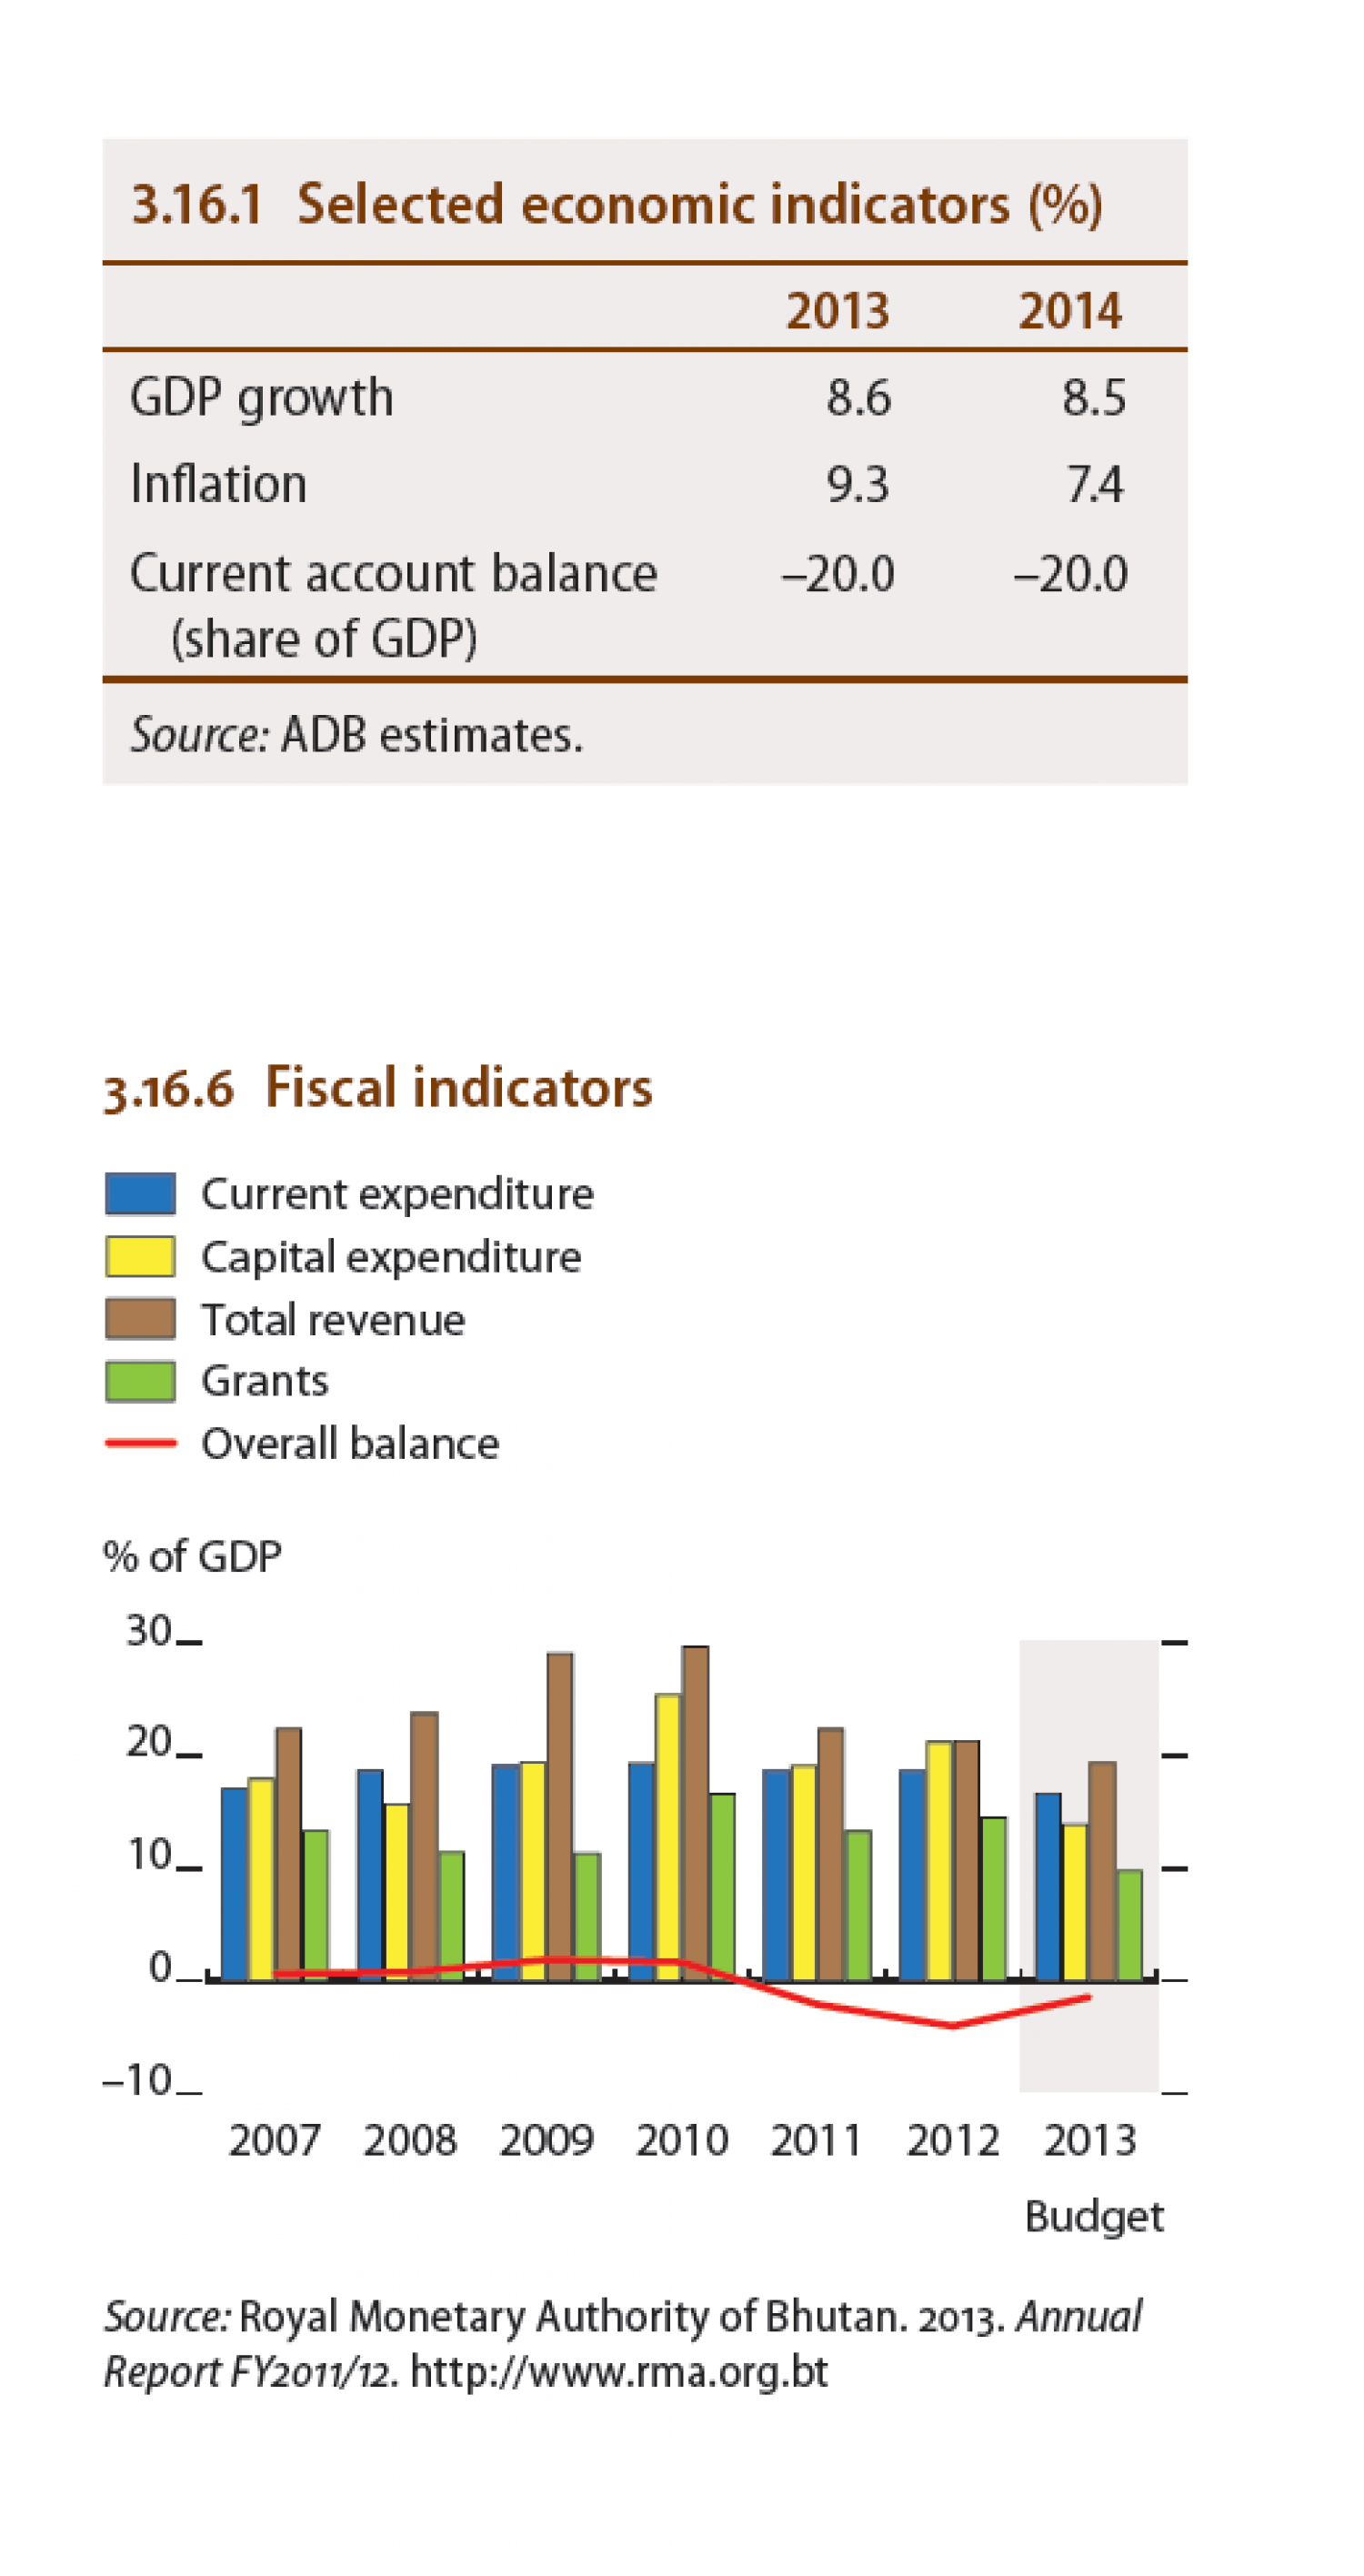 Bhutan - Selected economic indicators, Fiscal indicators Infographic